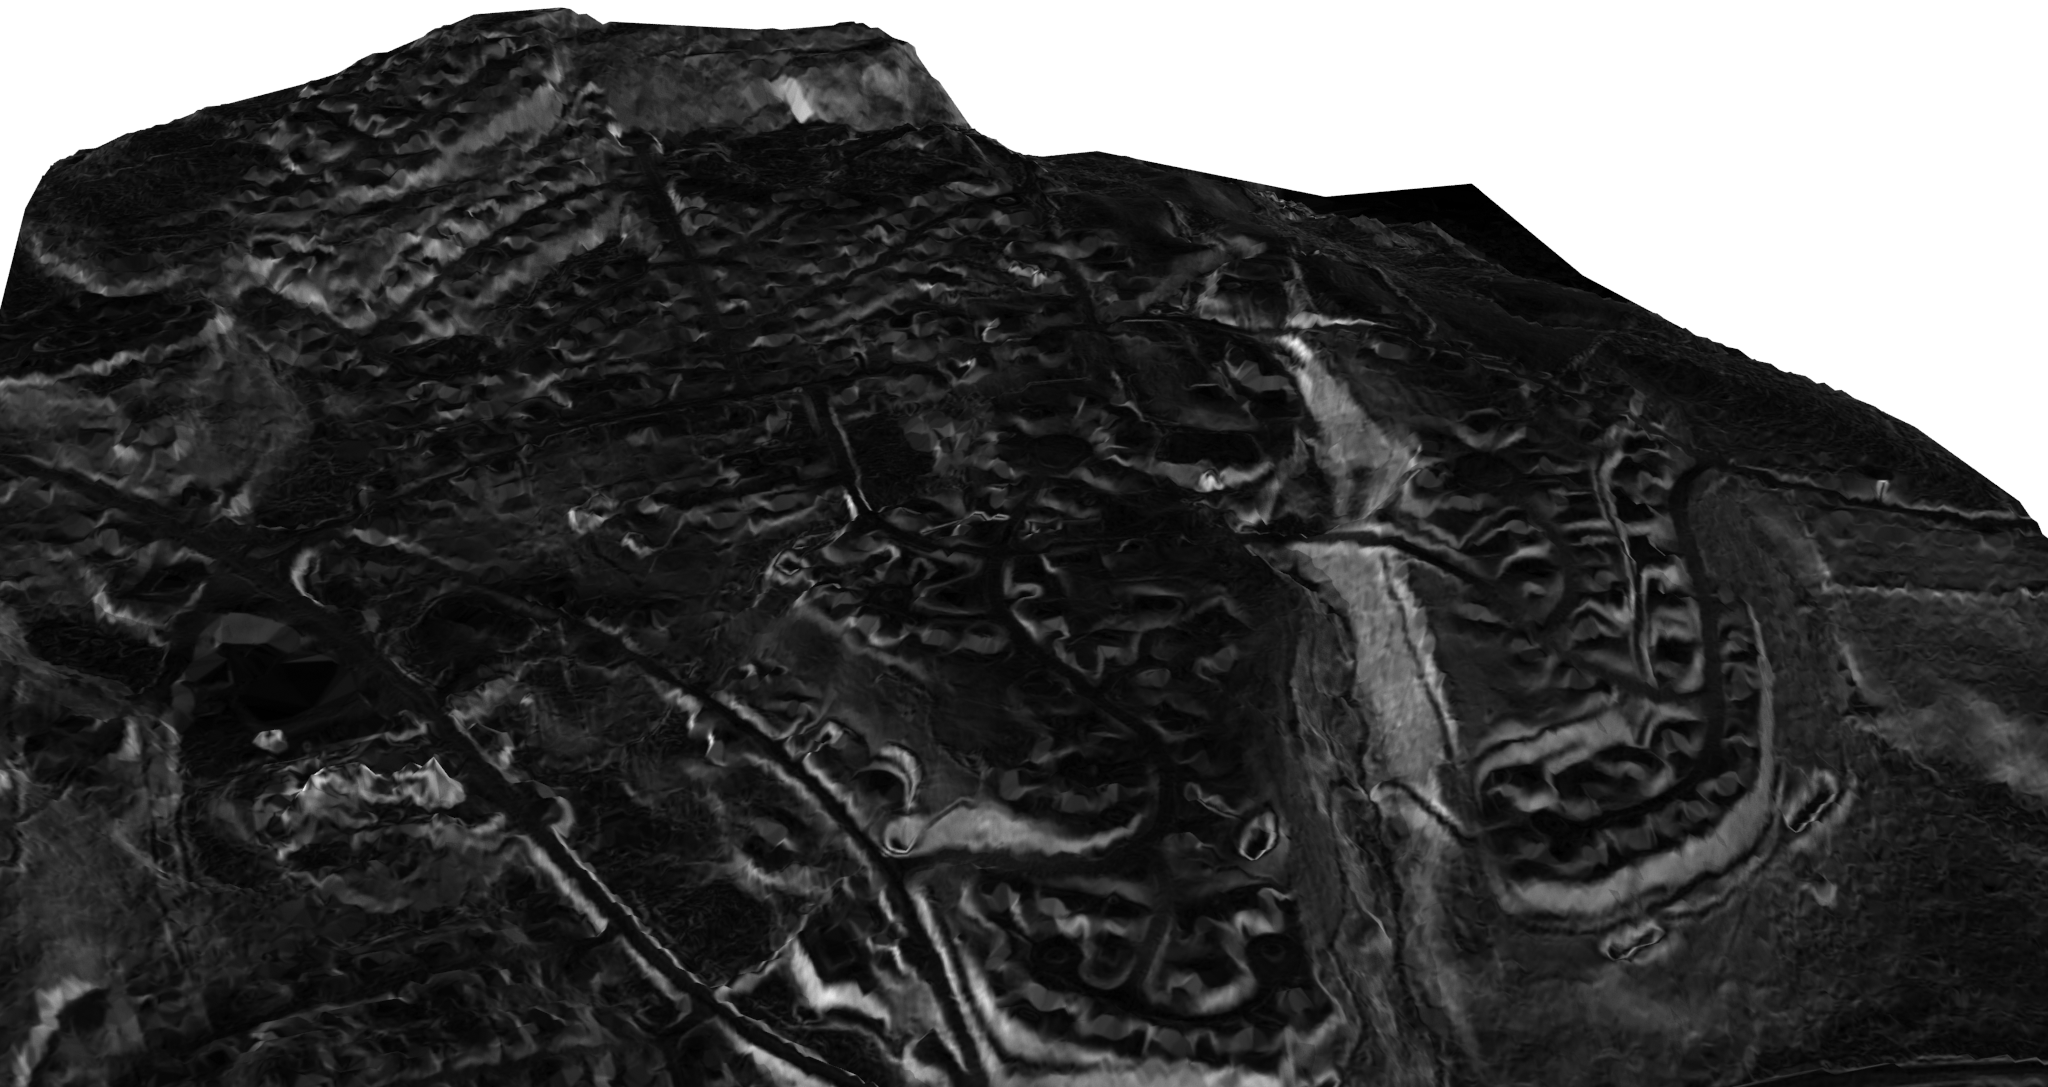 Terrain used to create the drawing.